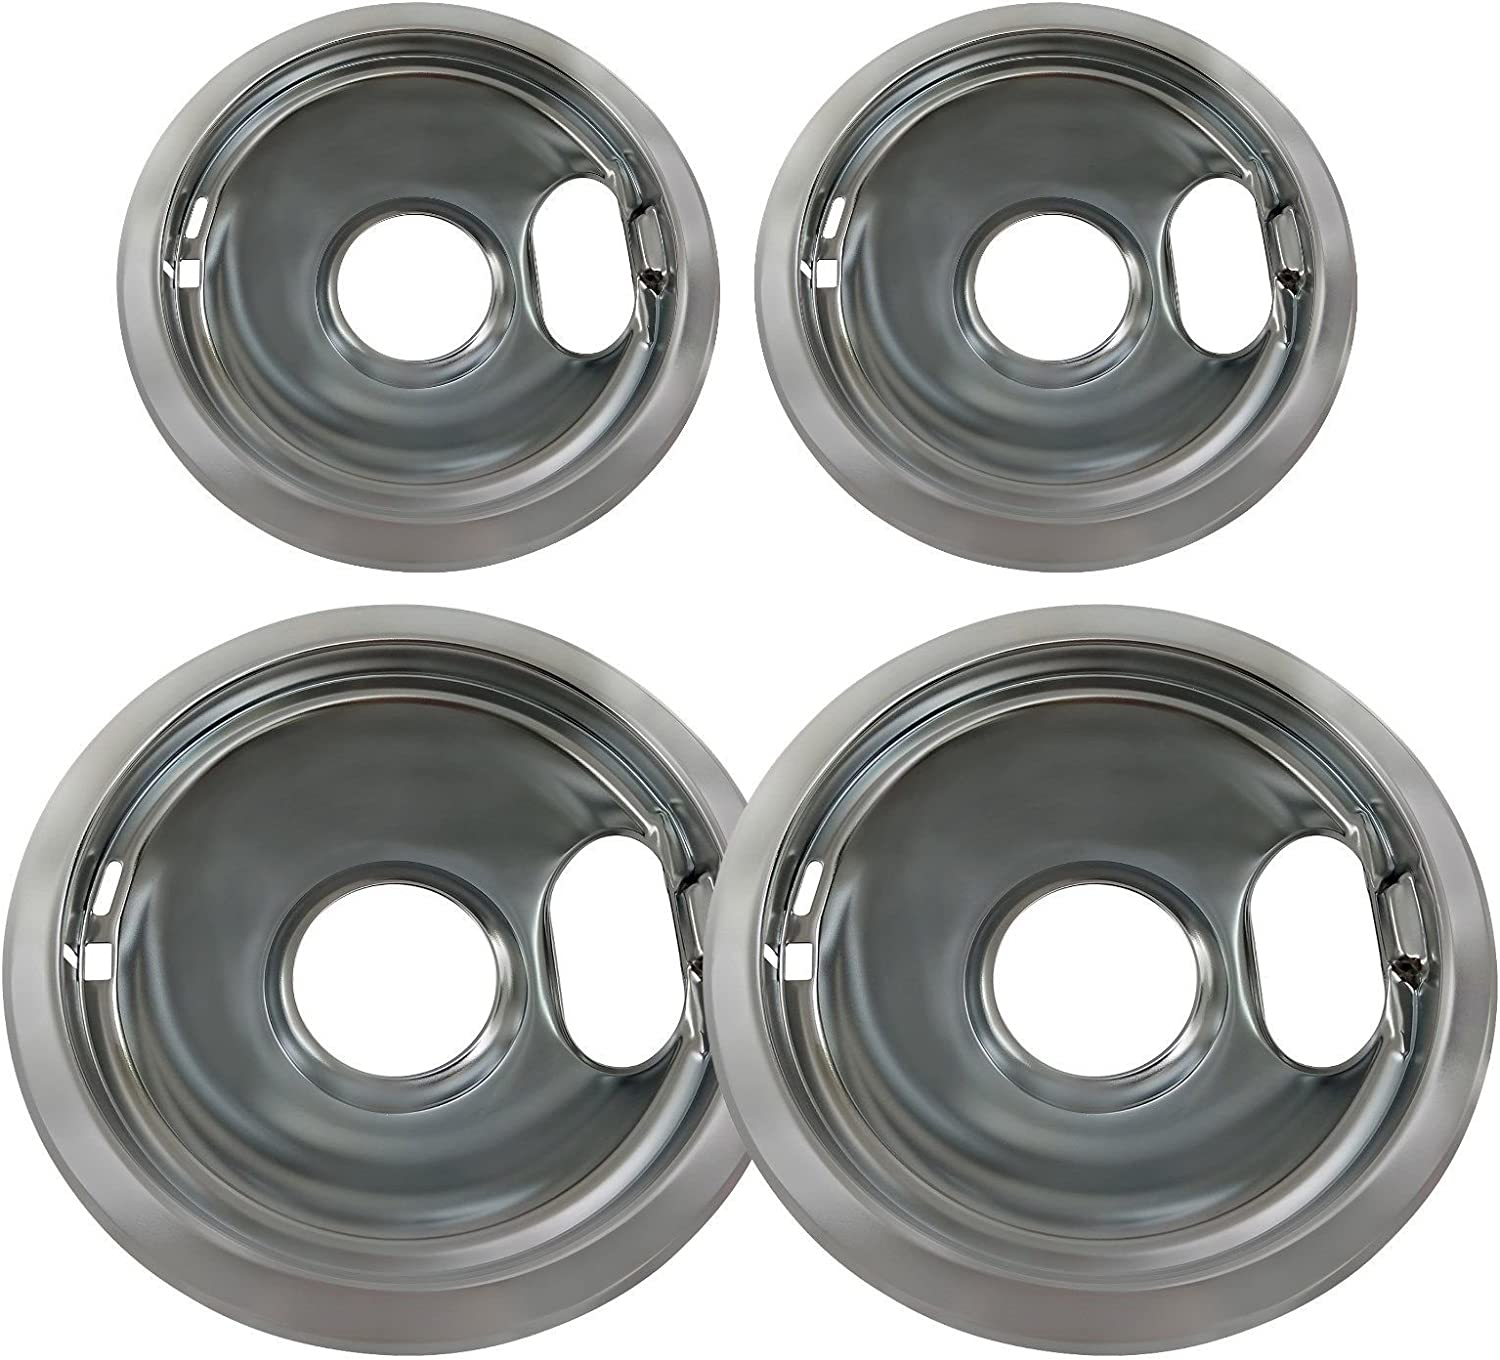 Chrome Drip Pan Set Replacement for Whirlpool W10278125 Two 6-Inch & Two 8-Inch Gxfc